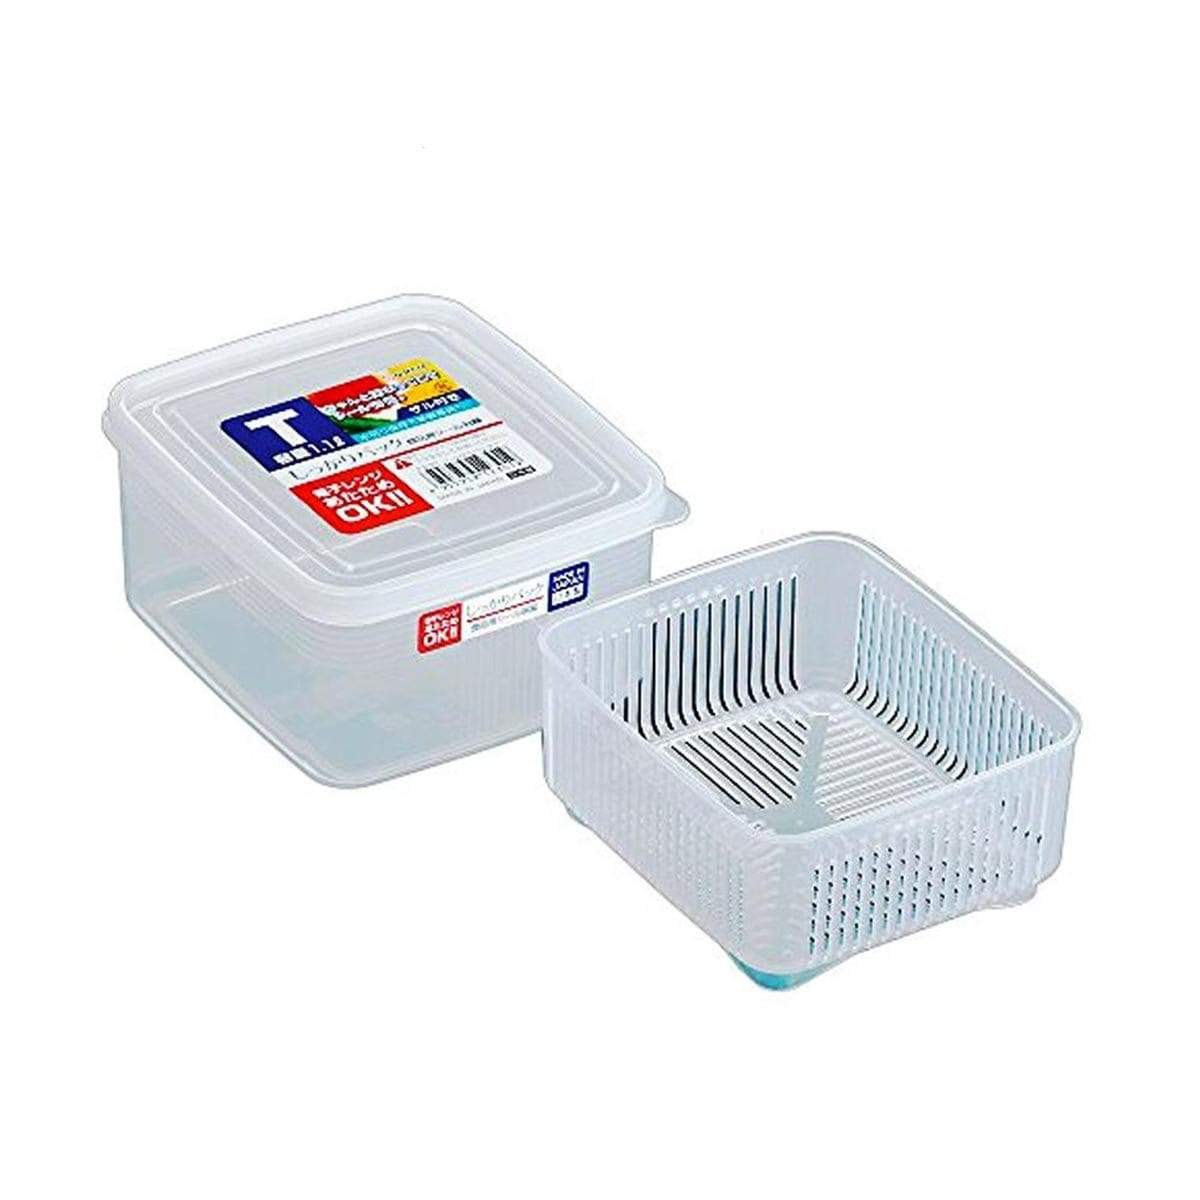 Japanese Plastic Measuring Food Container T K230